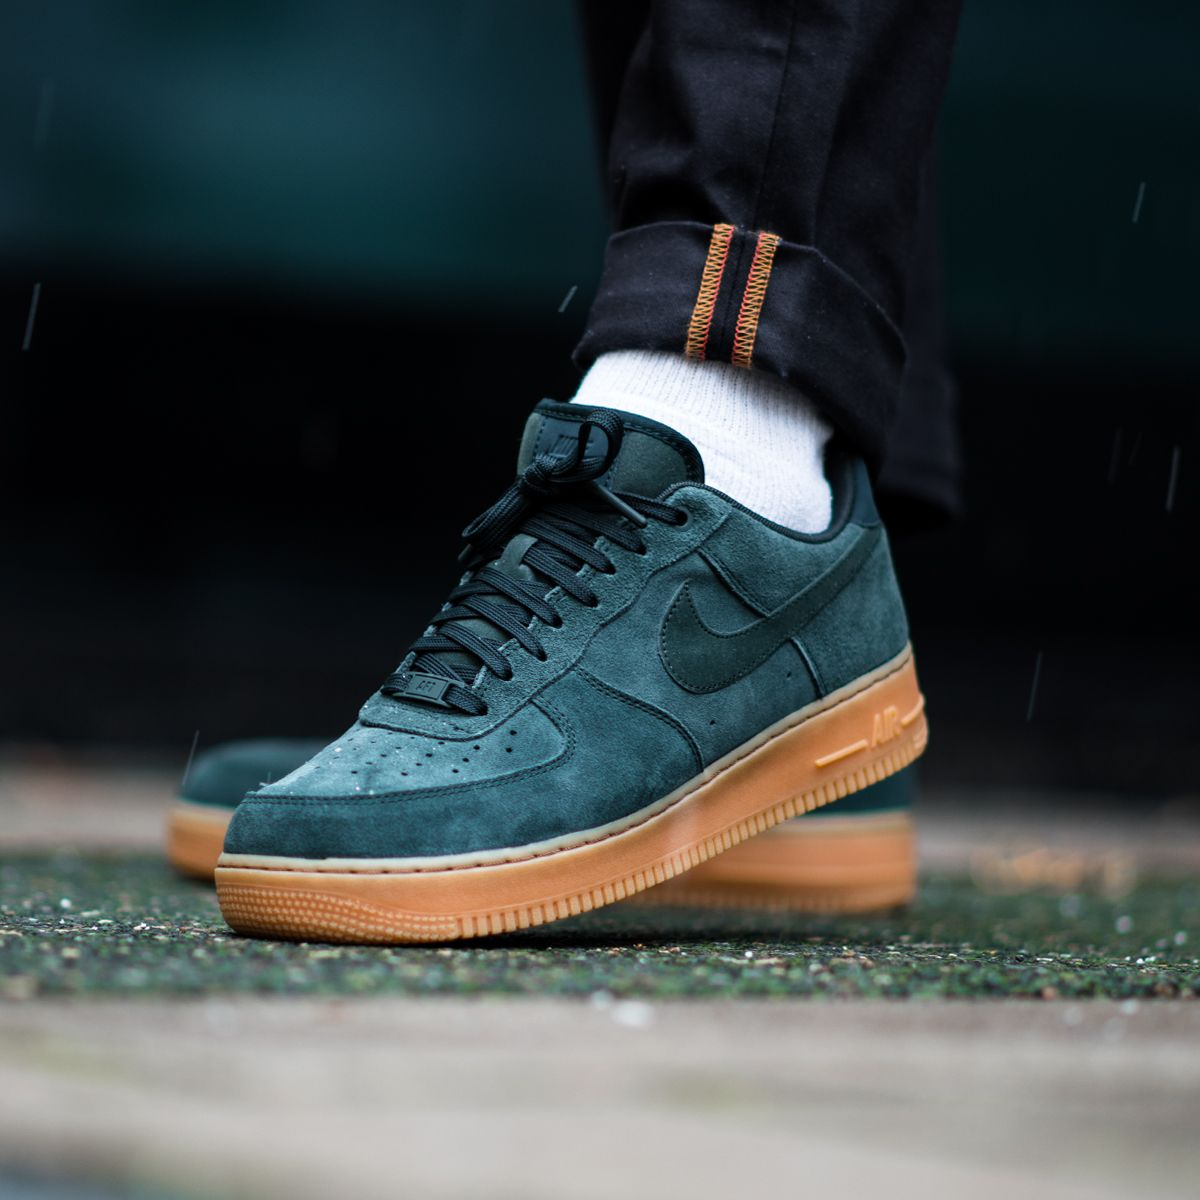 new product fc4ae 87033 Dark green suede AF1s with gum sole! This Nike Air Force 1 Low is available  now on KICKZ.com and in selected stores!